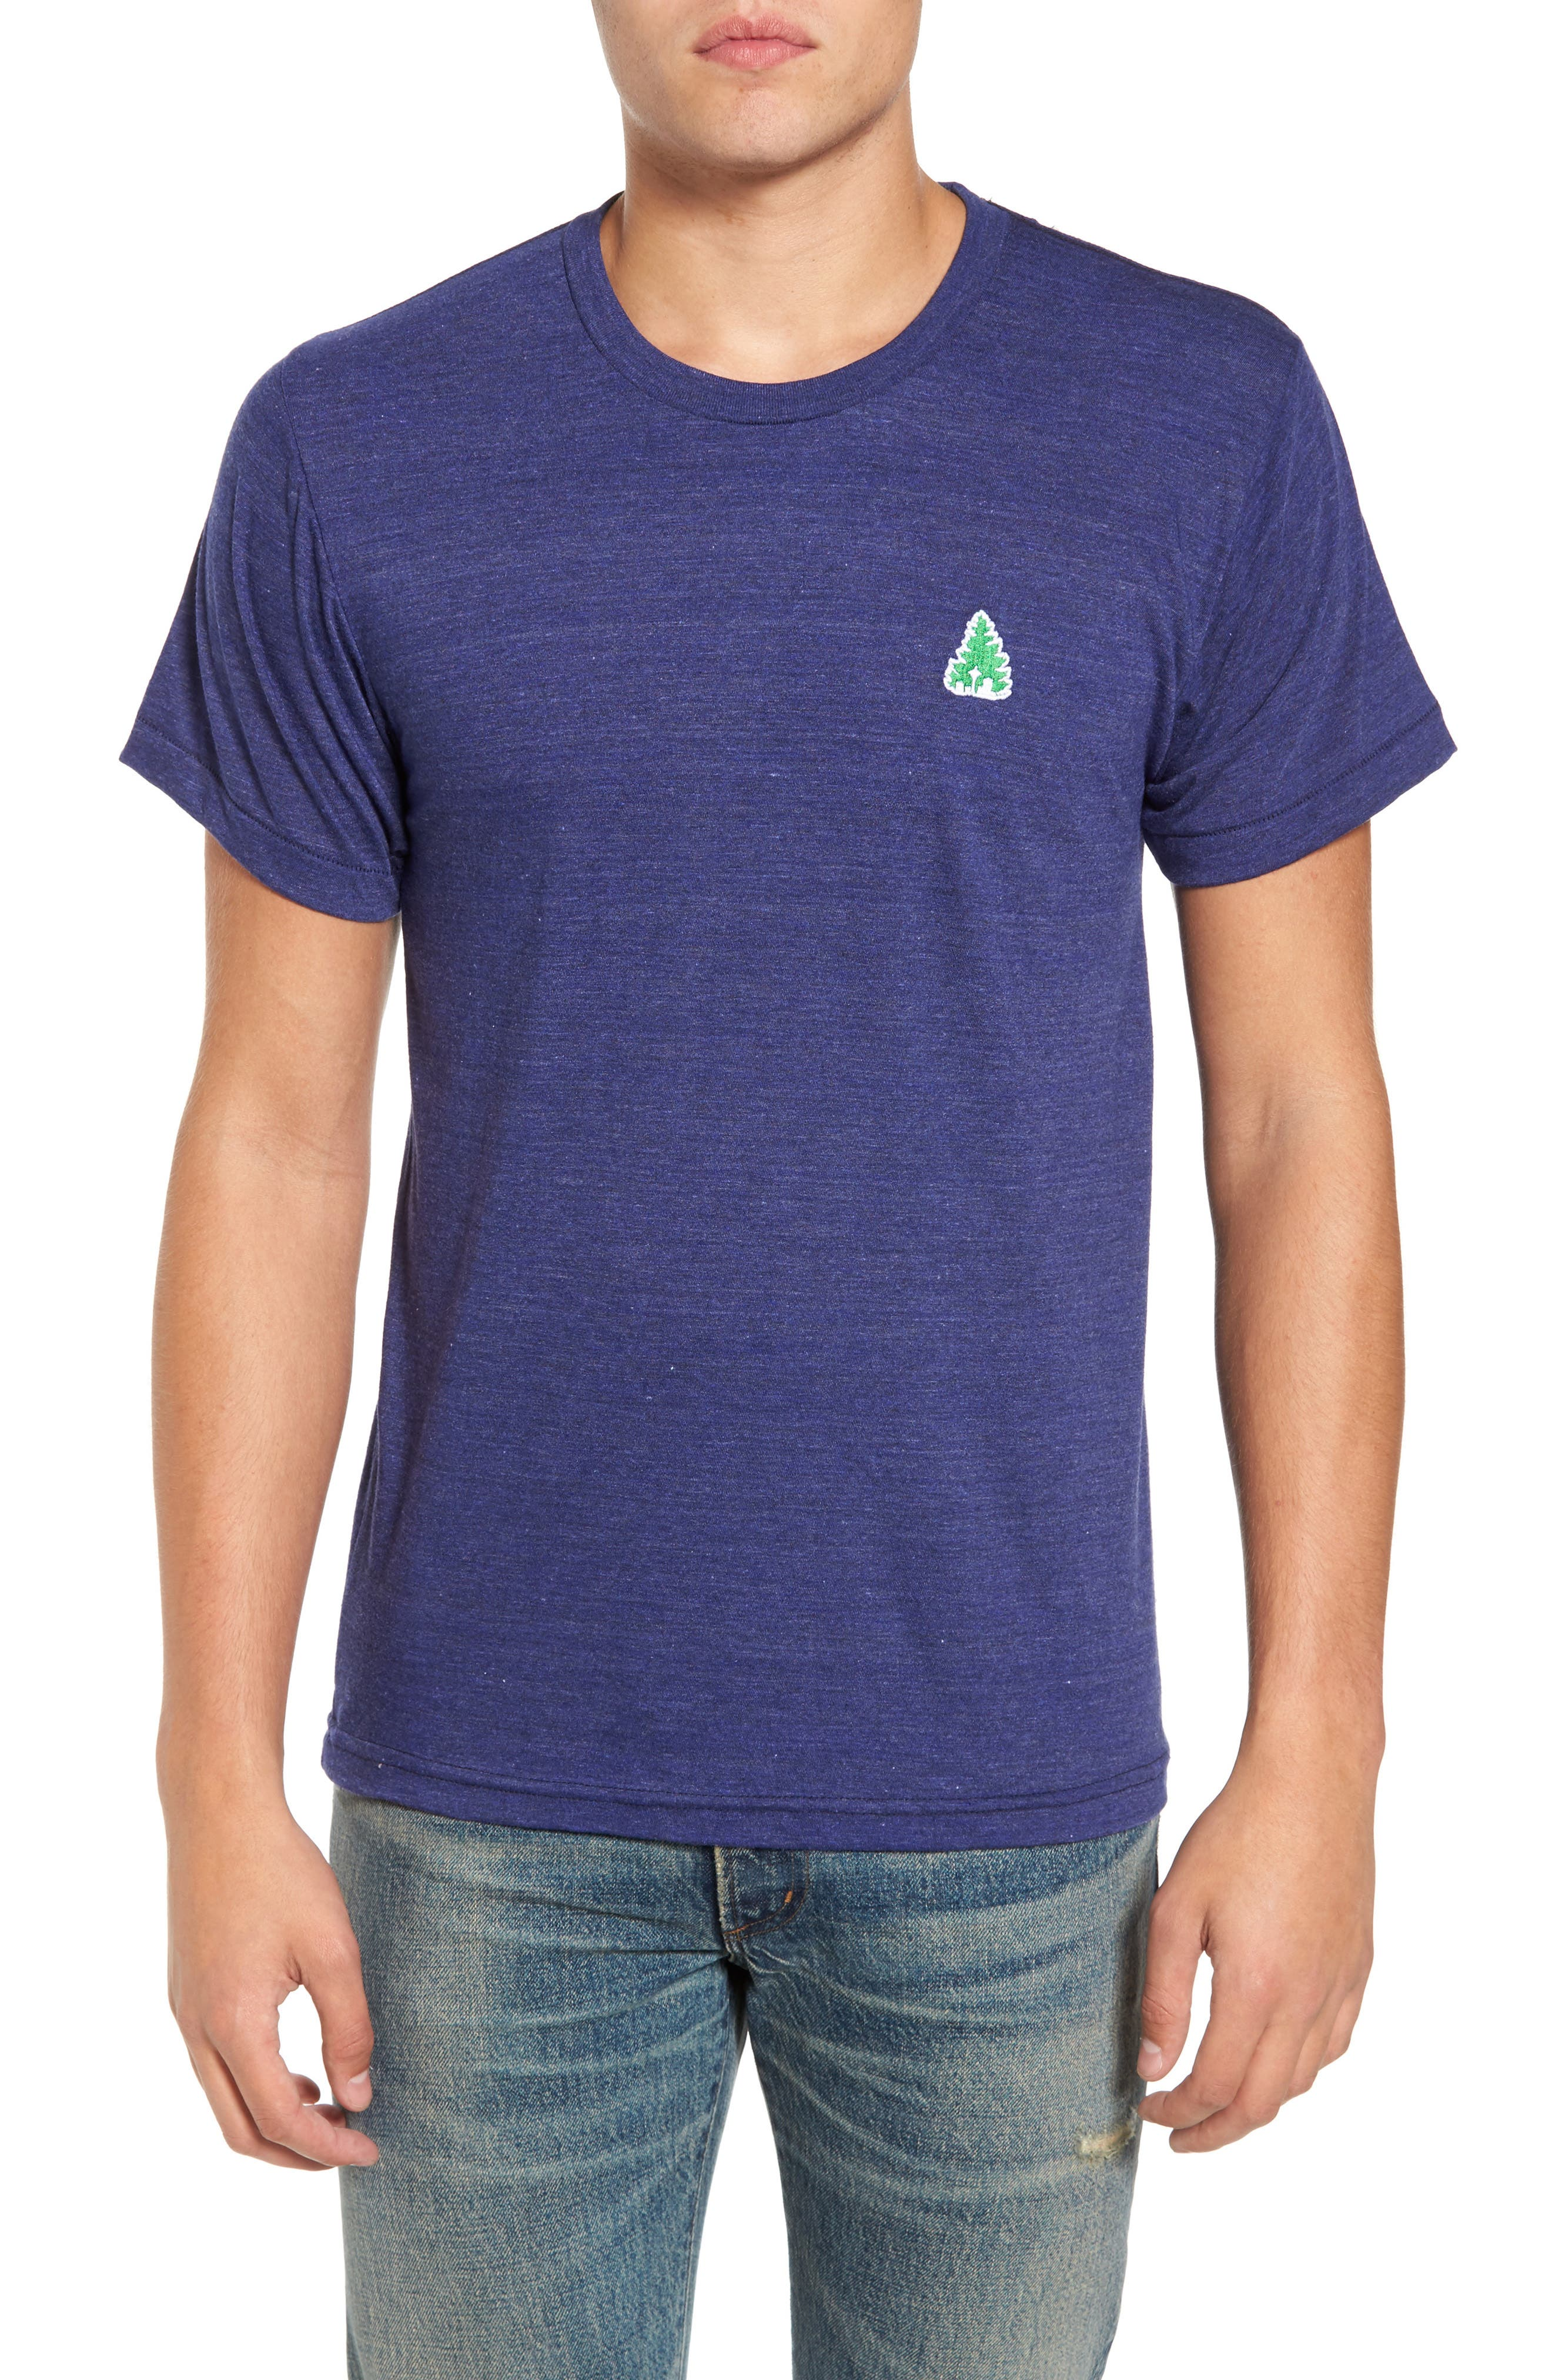 Main Image - Casual Industrees Johnny Tree Embroidered T-Shirt